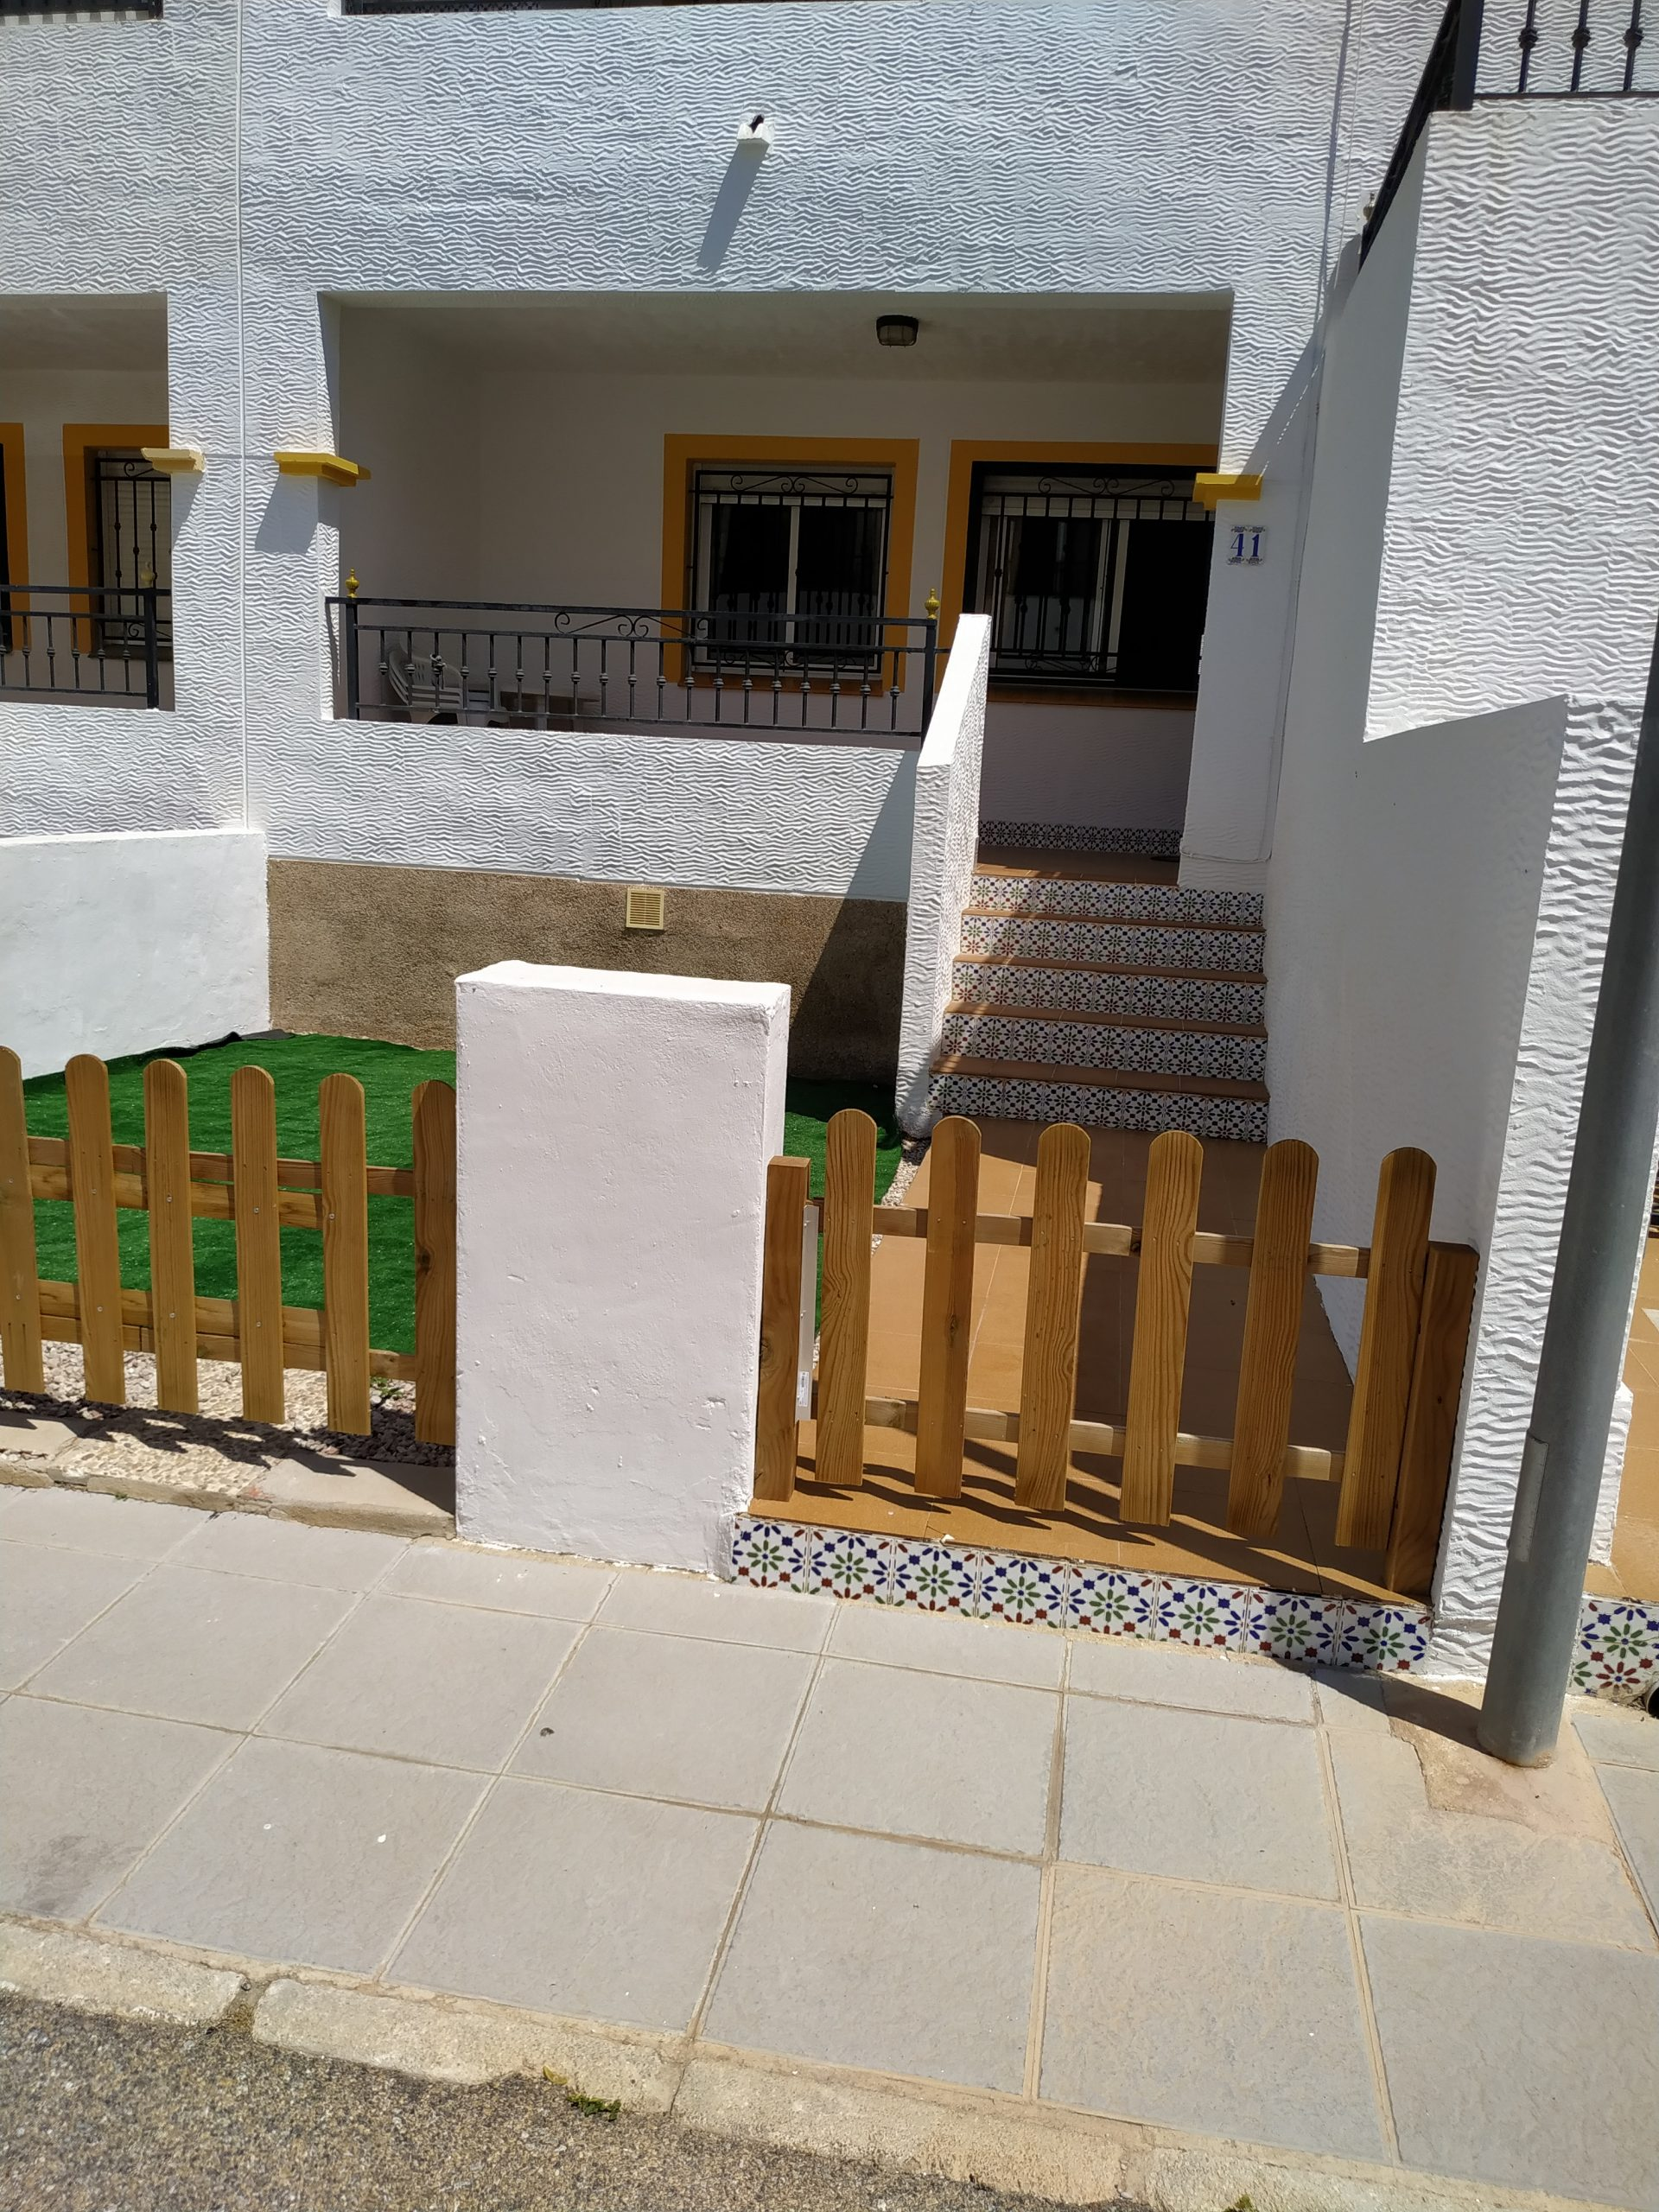 Fantastic opportunity to live in the sun